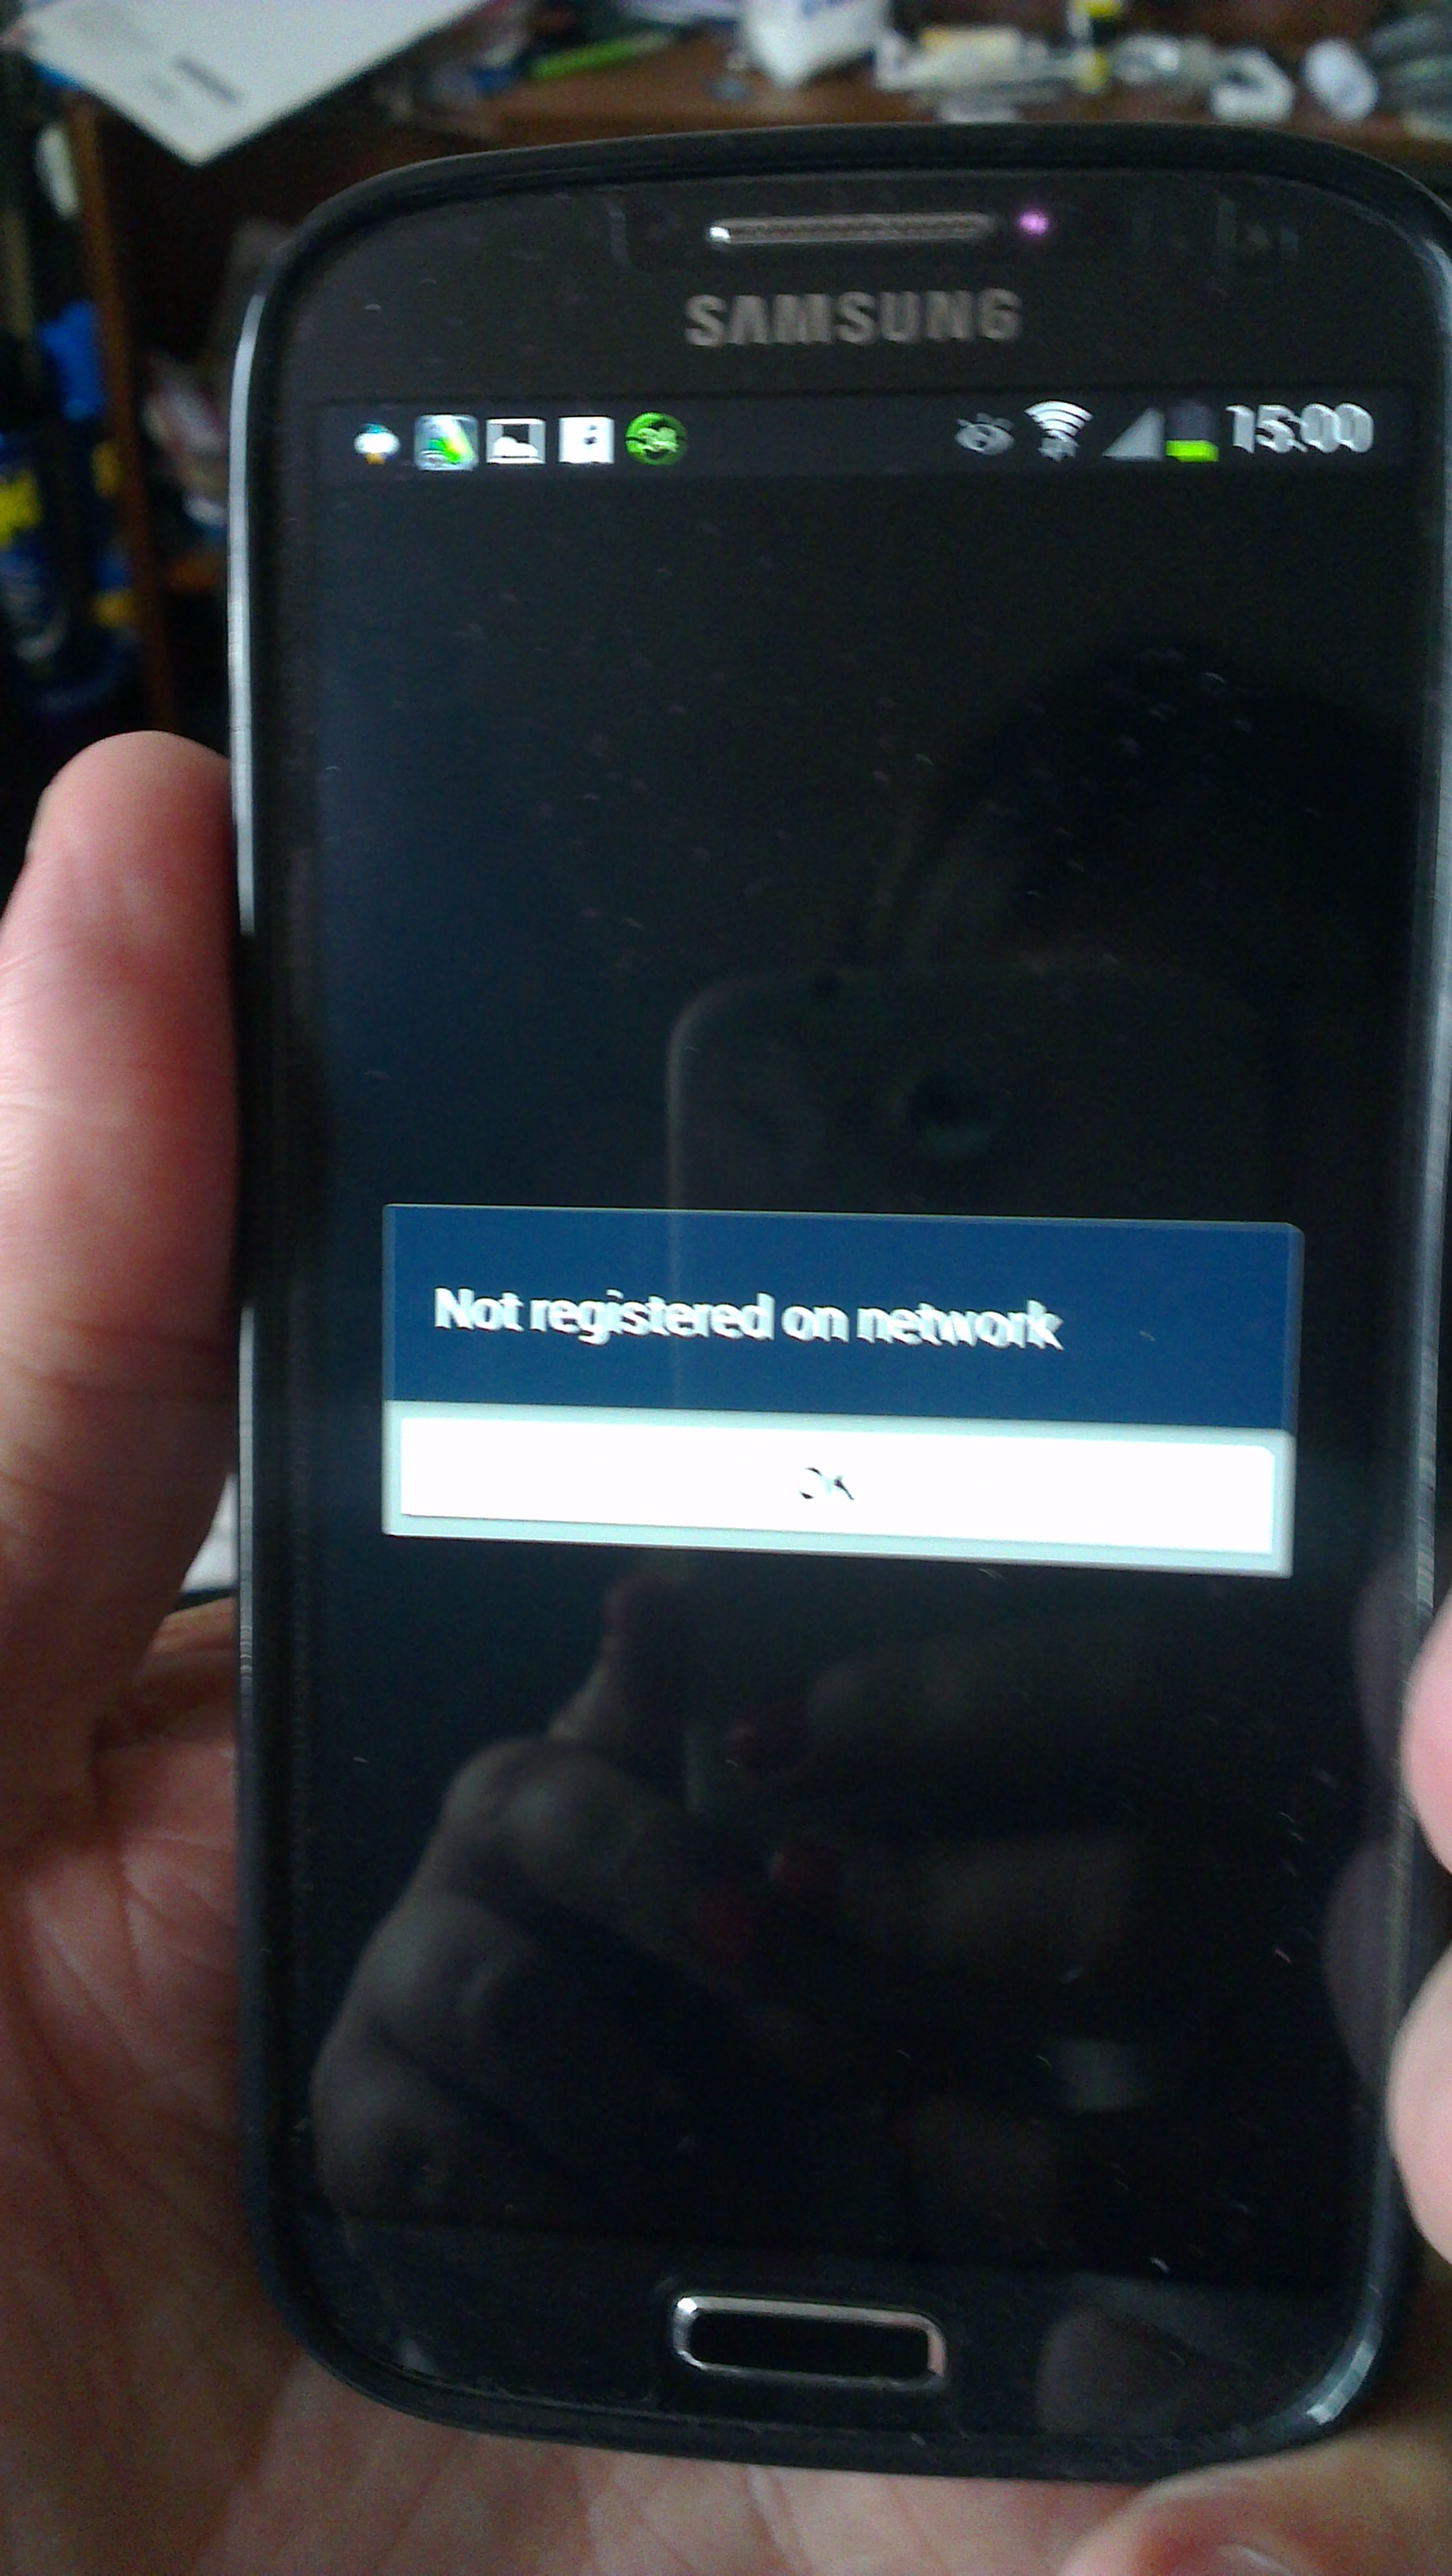 How to fix Not Registered on Network on Android, Samsung